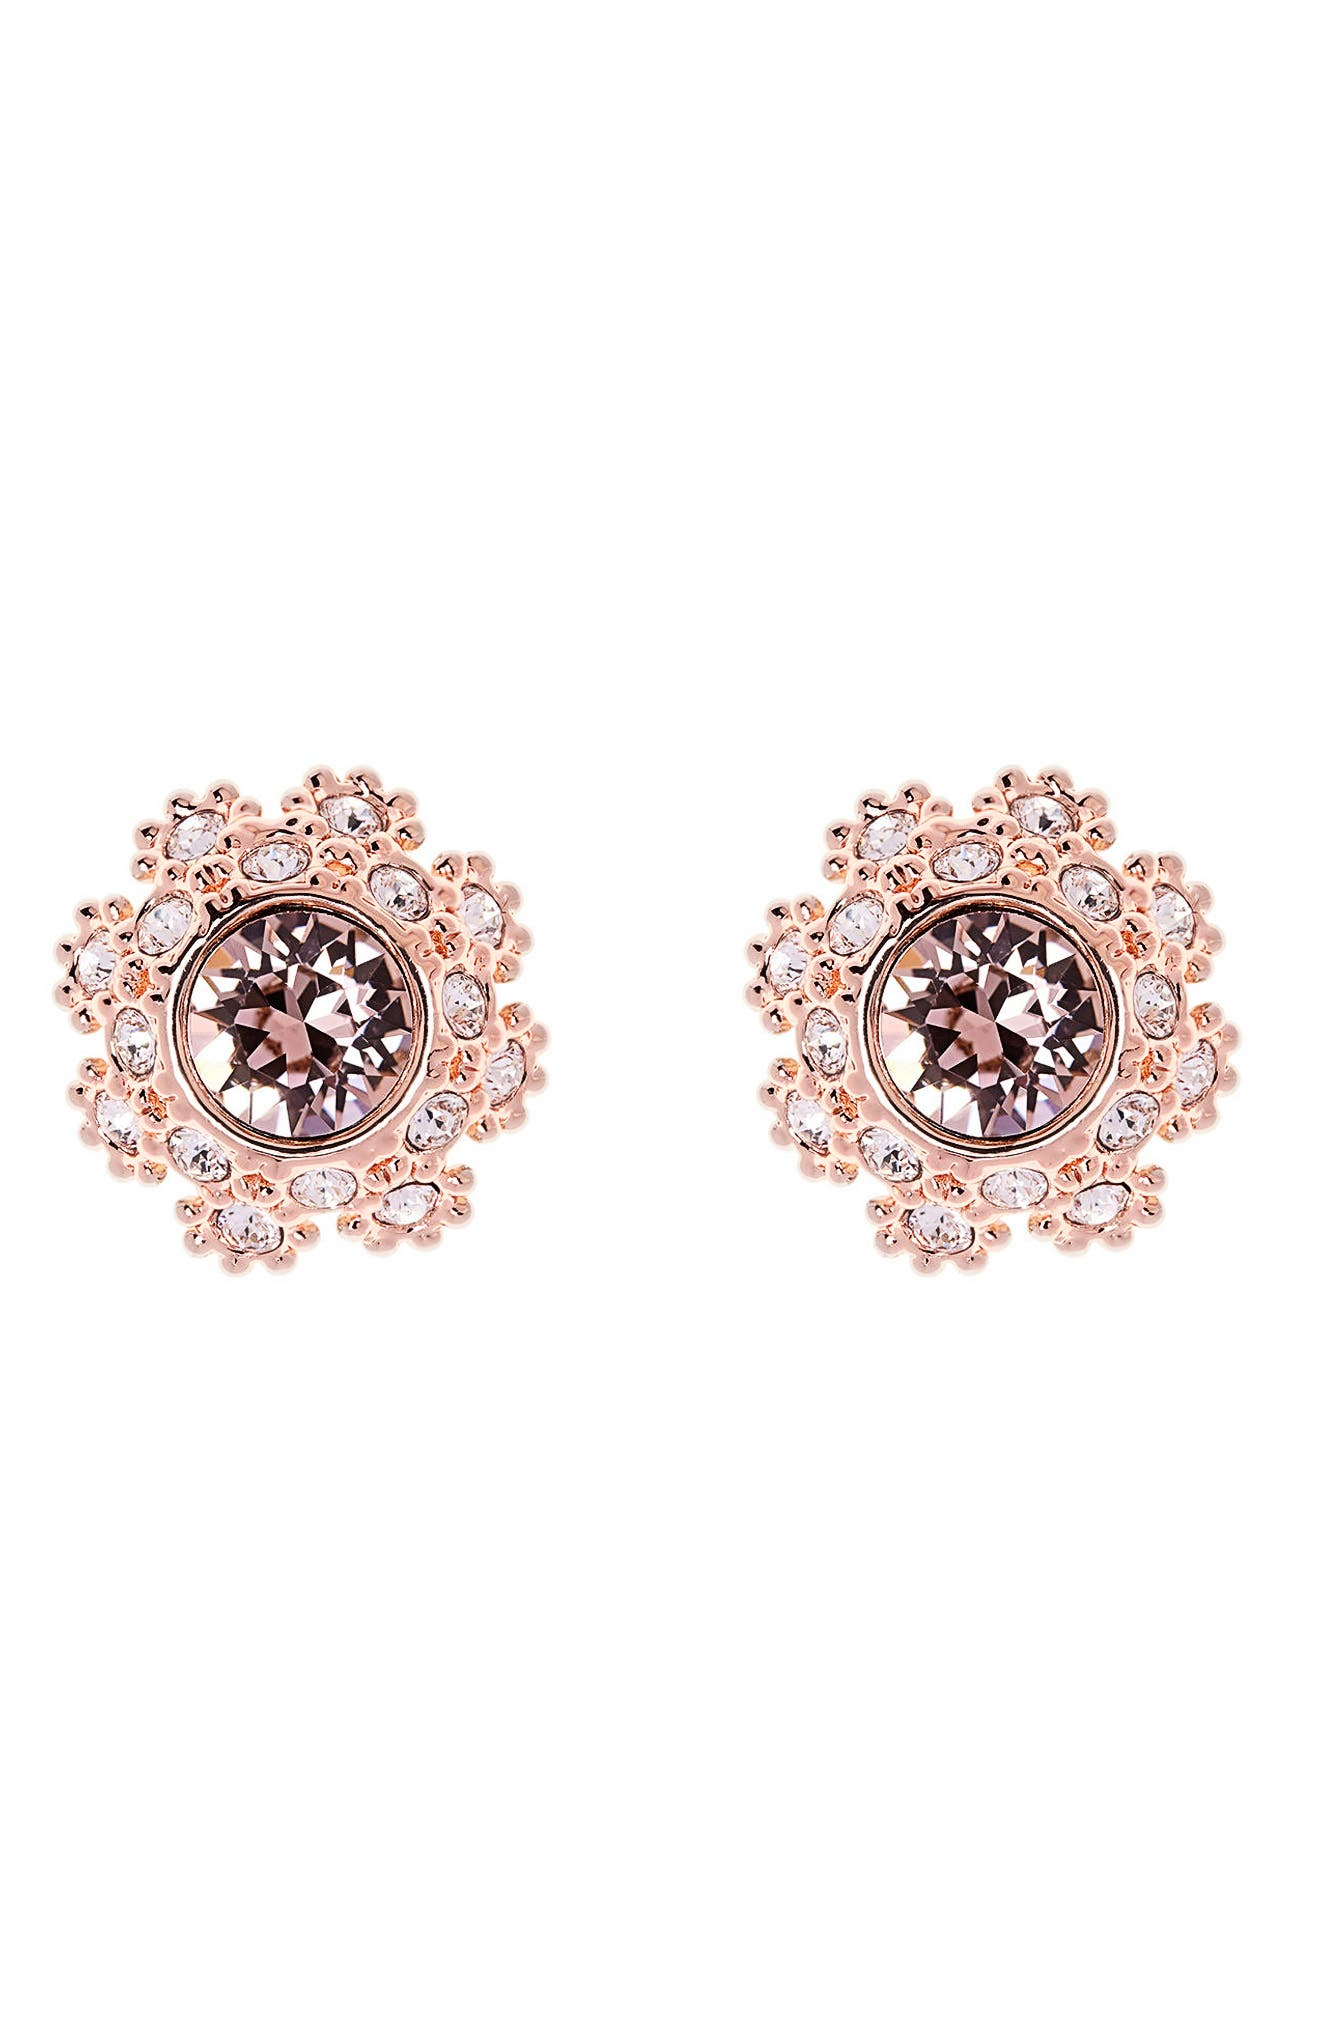 Crystal Daisy Lace Stud Earrings,                             Main thumbnail 1, color,                             Pink